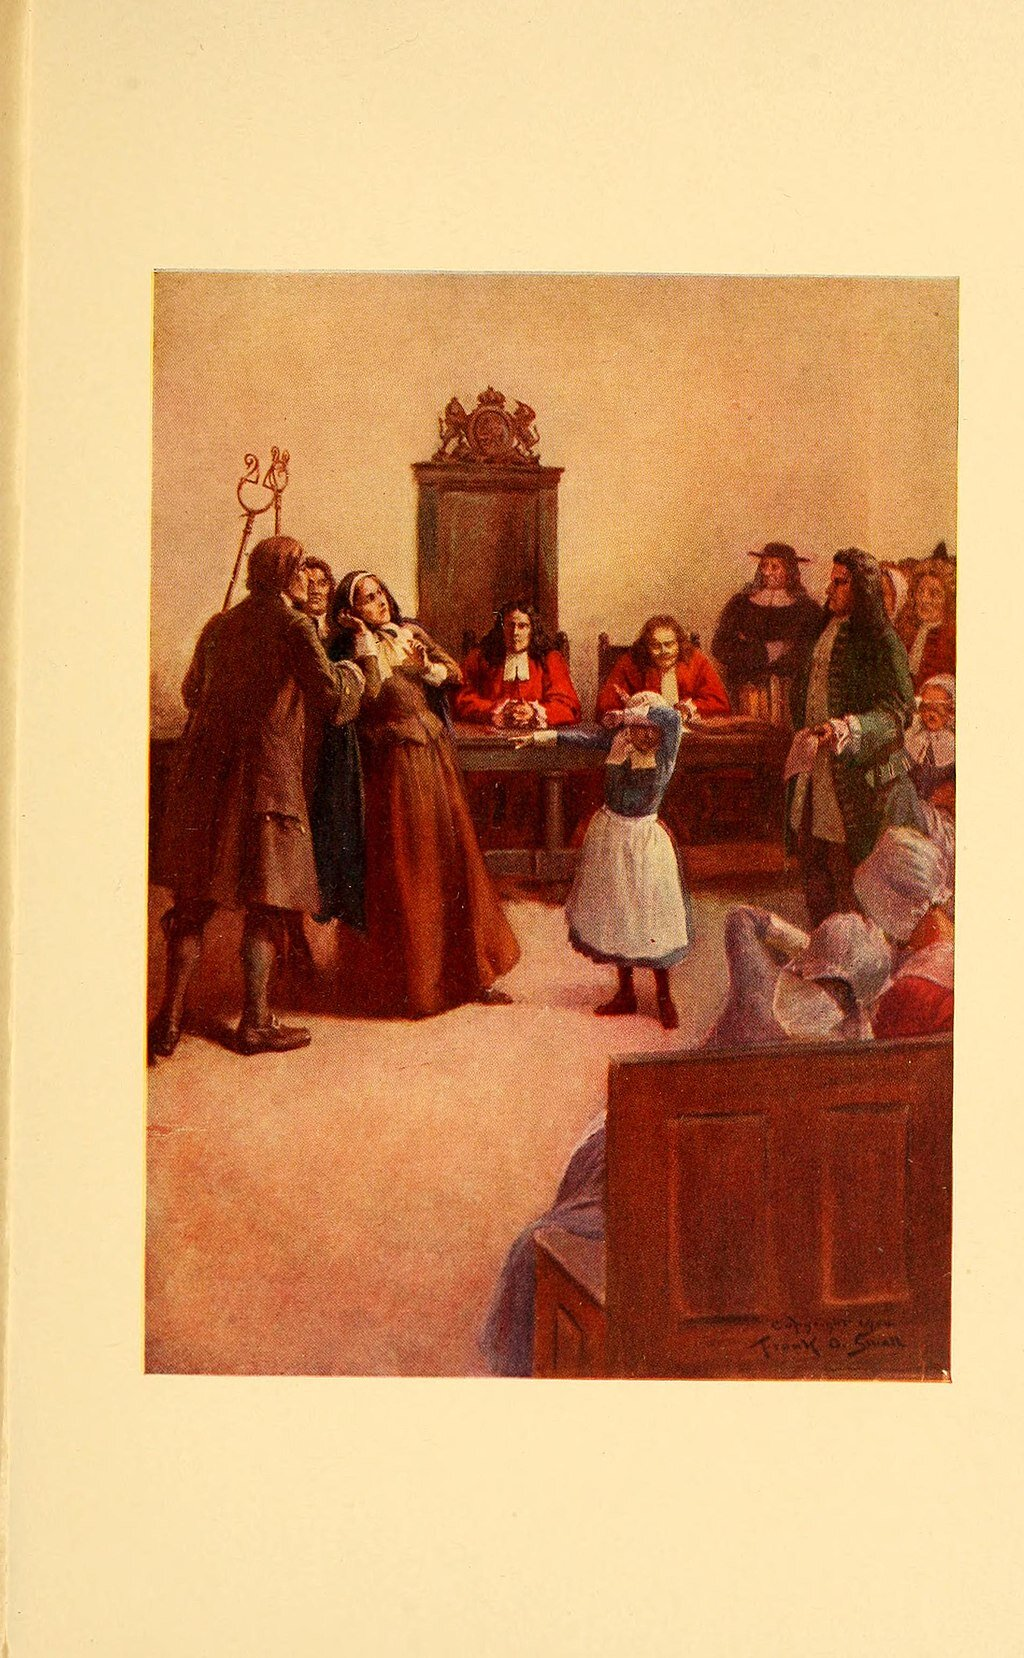 An image of the Salem witch trials by Frank O. Small.